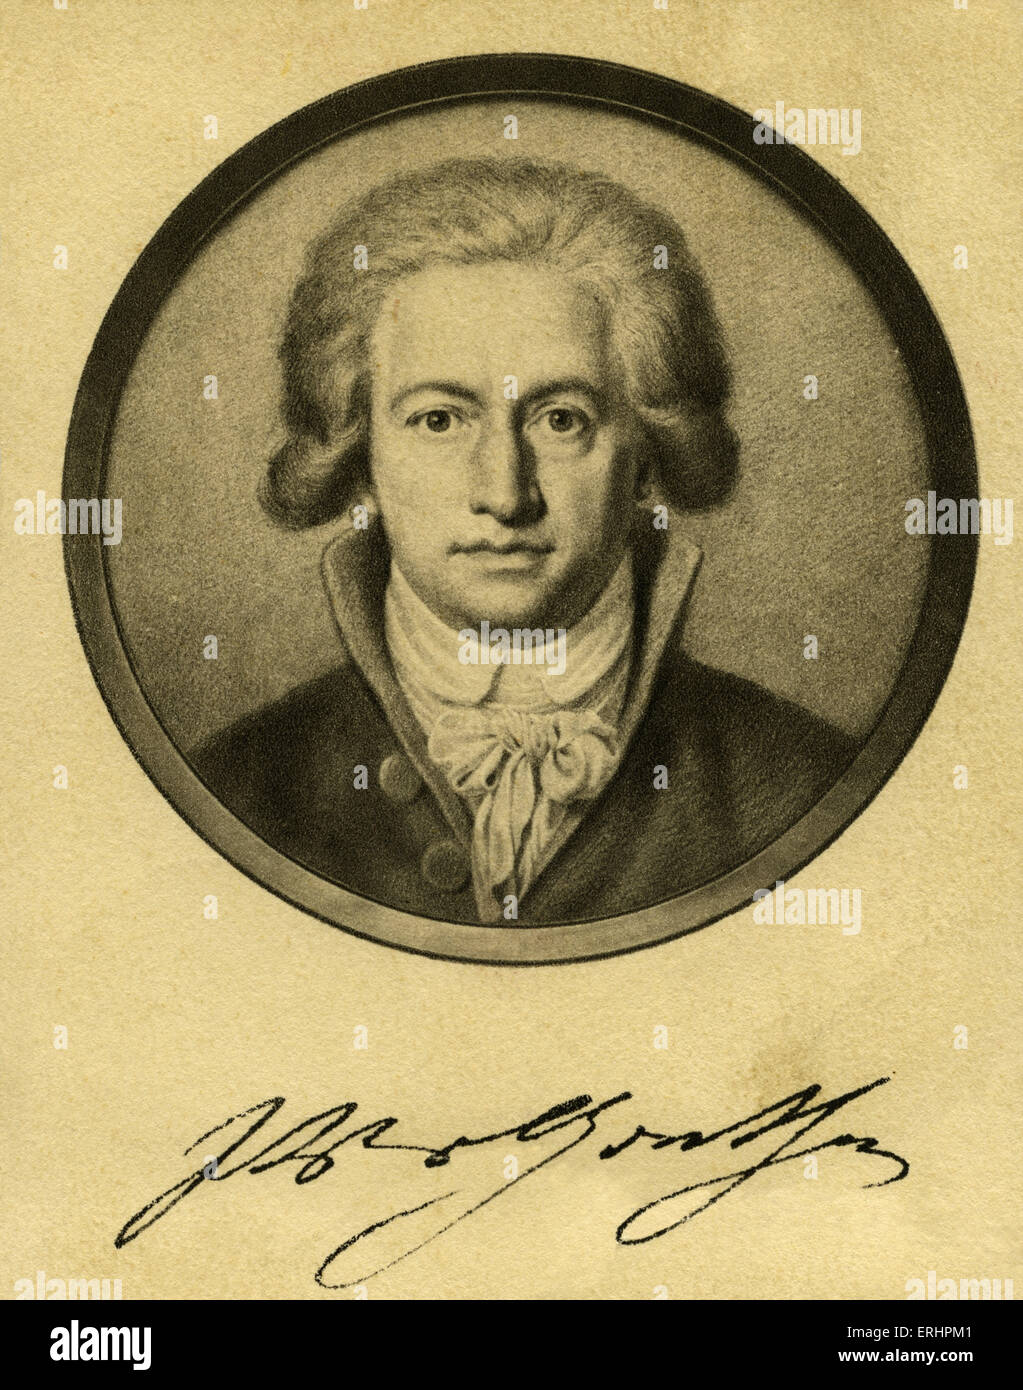 Johann Wolfgang von Goethe - 1791 with signature.  German writer: 28 August 1749 – 22 March 1832. - Stock Image